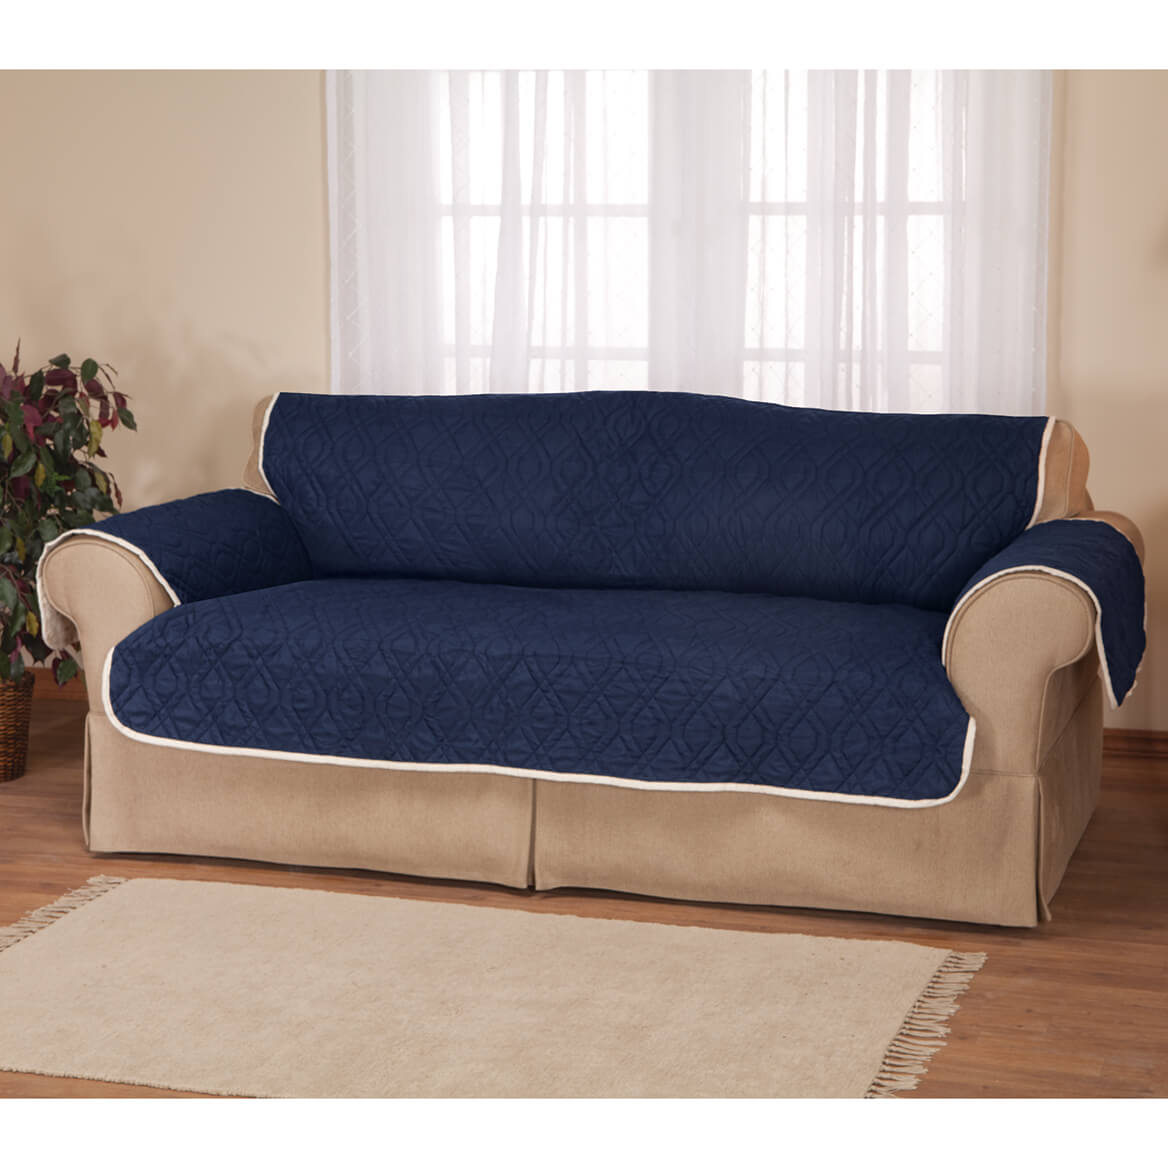 5 Star Reversible Waterproof Sofa Protector-358585